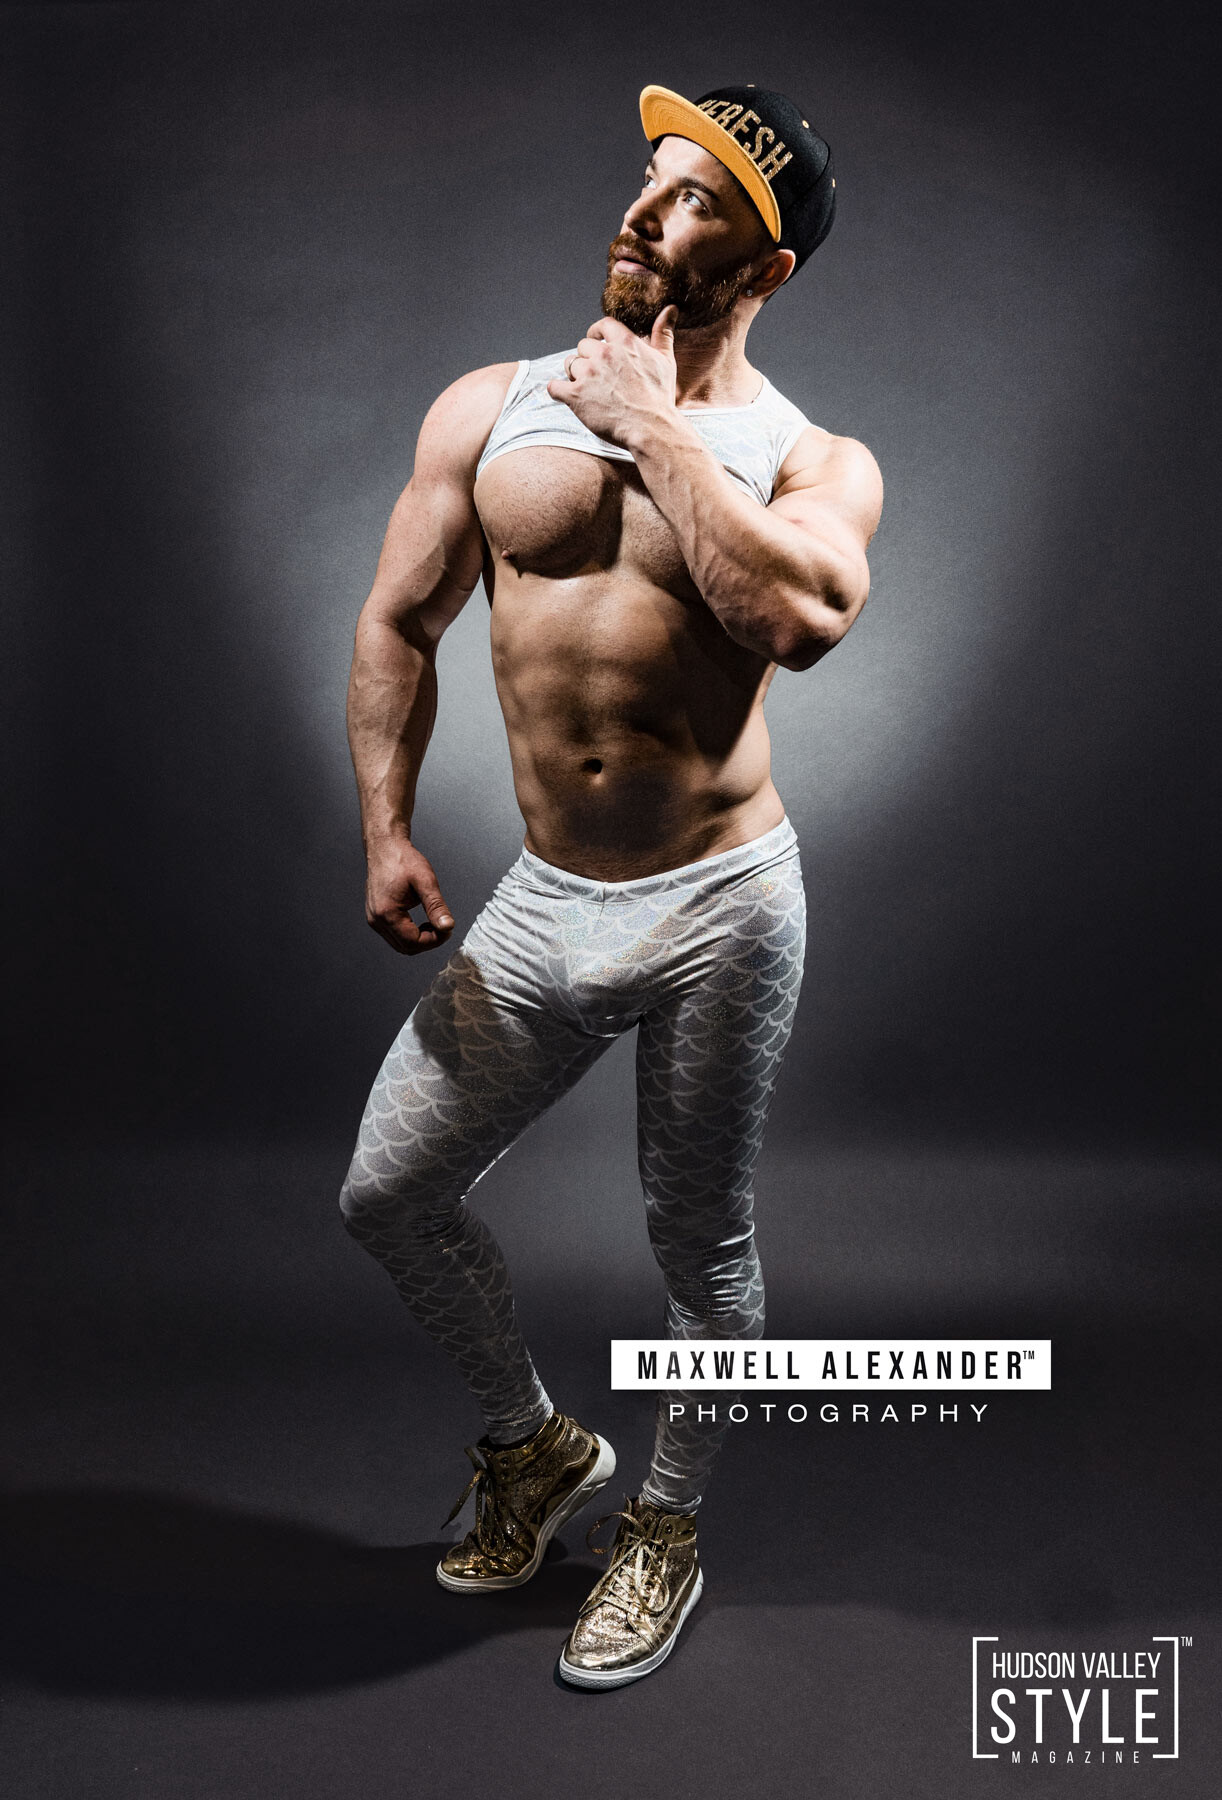 Professional Bodybuilding Photography by Maxwell Alexander – Best Gay OnlyFans Fitness Model